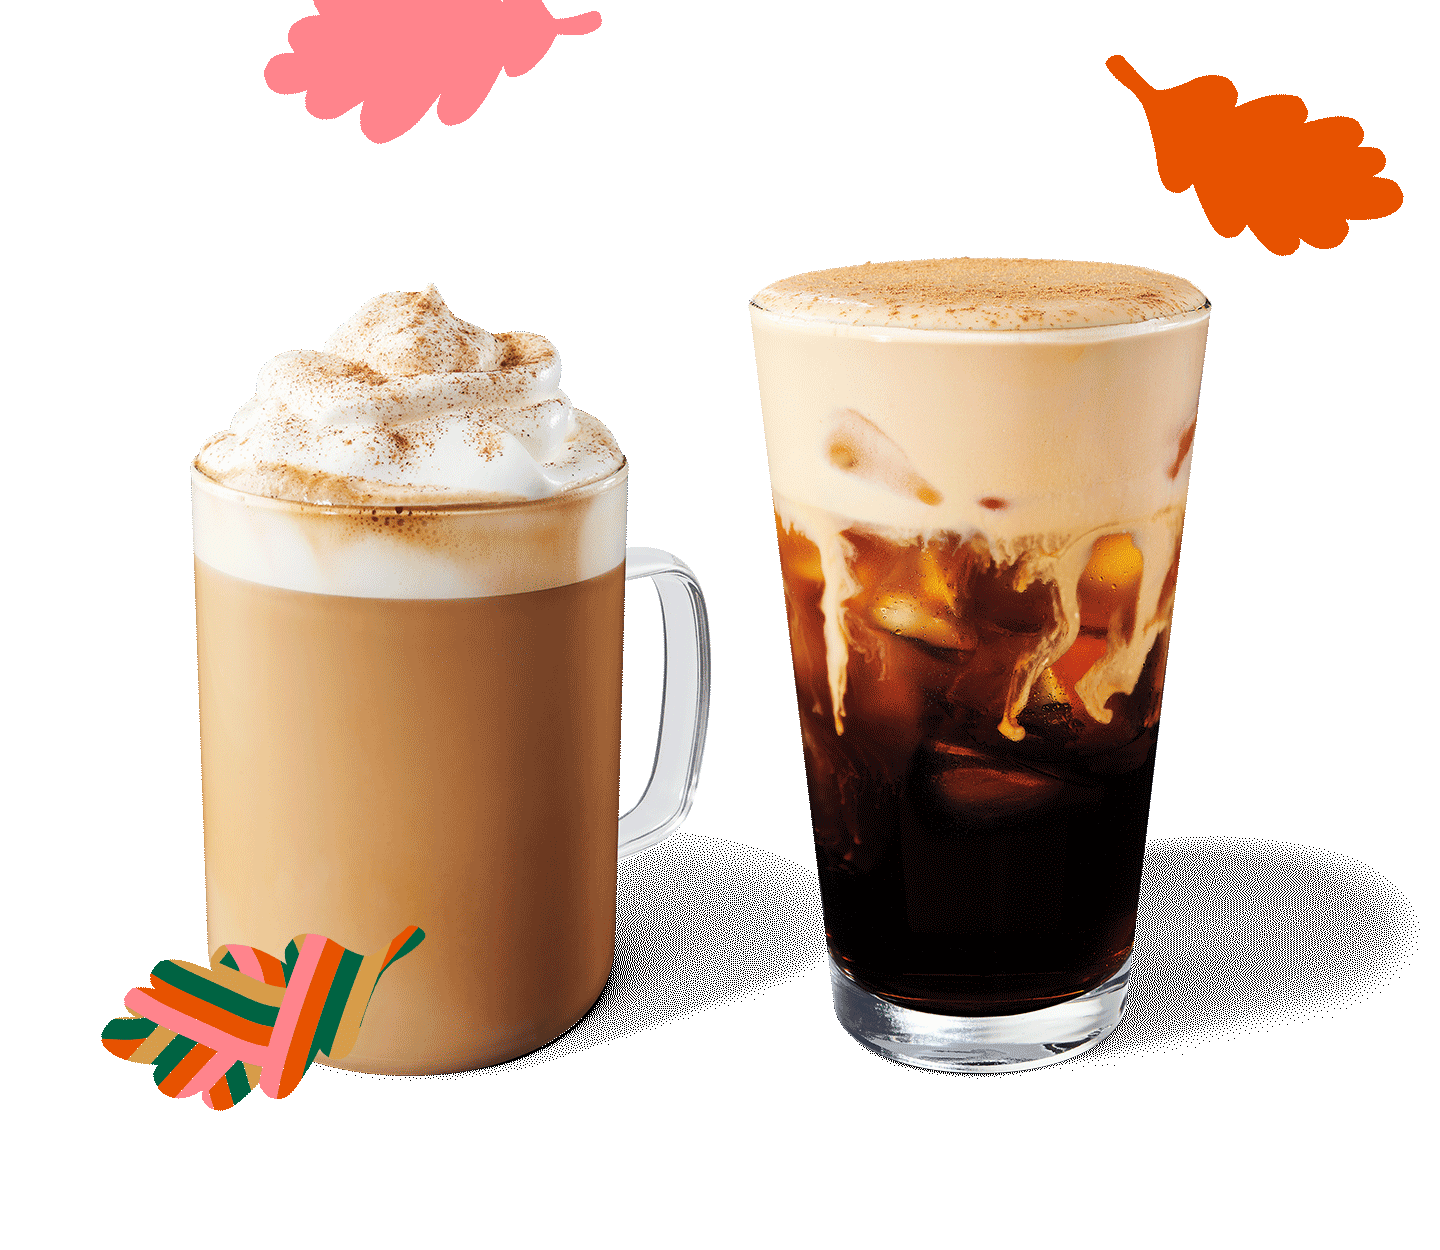 A Pumpkin Cream Cold Brew sits next to a Pumpkin Spice Latte in a layout with graphic, fall leaves.